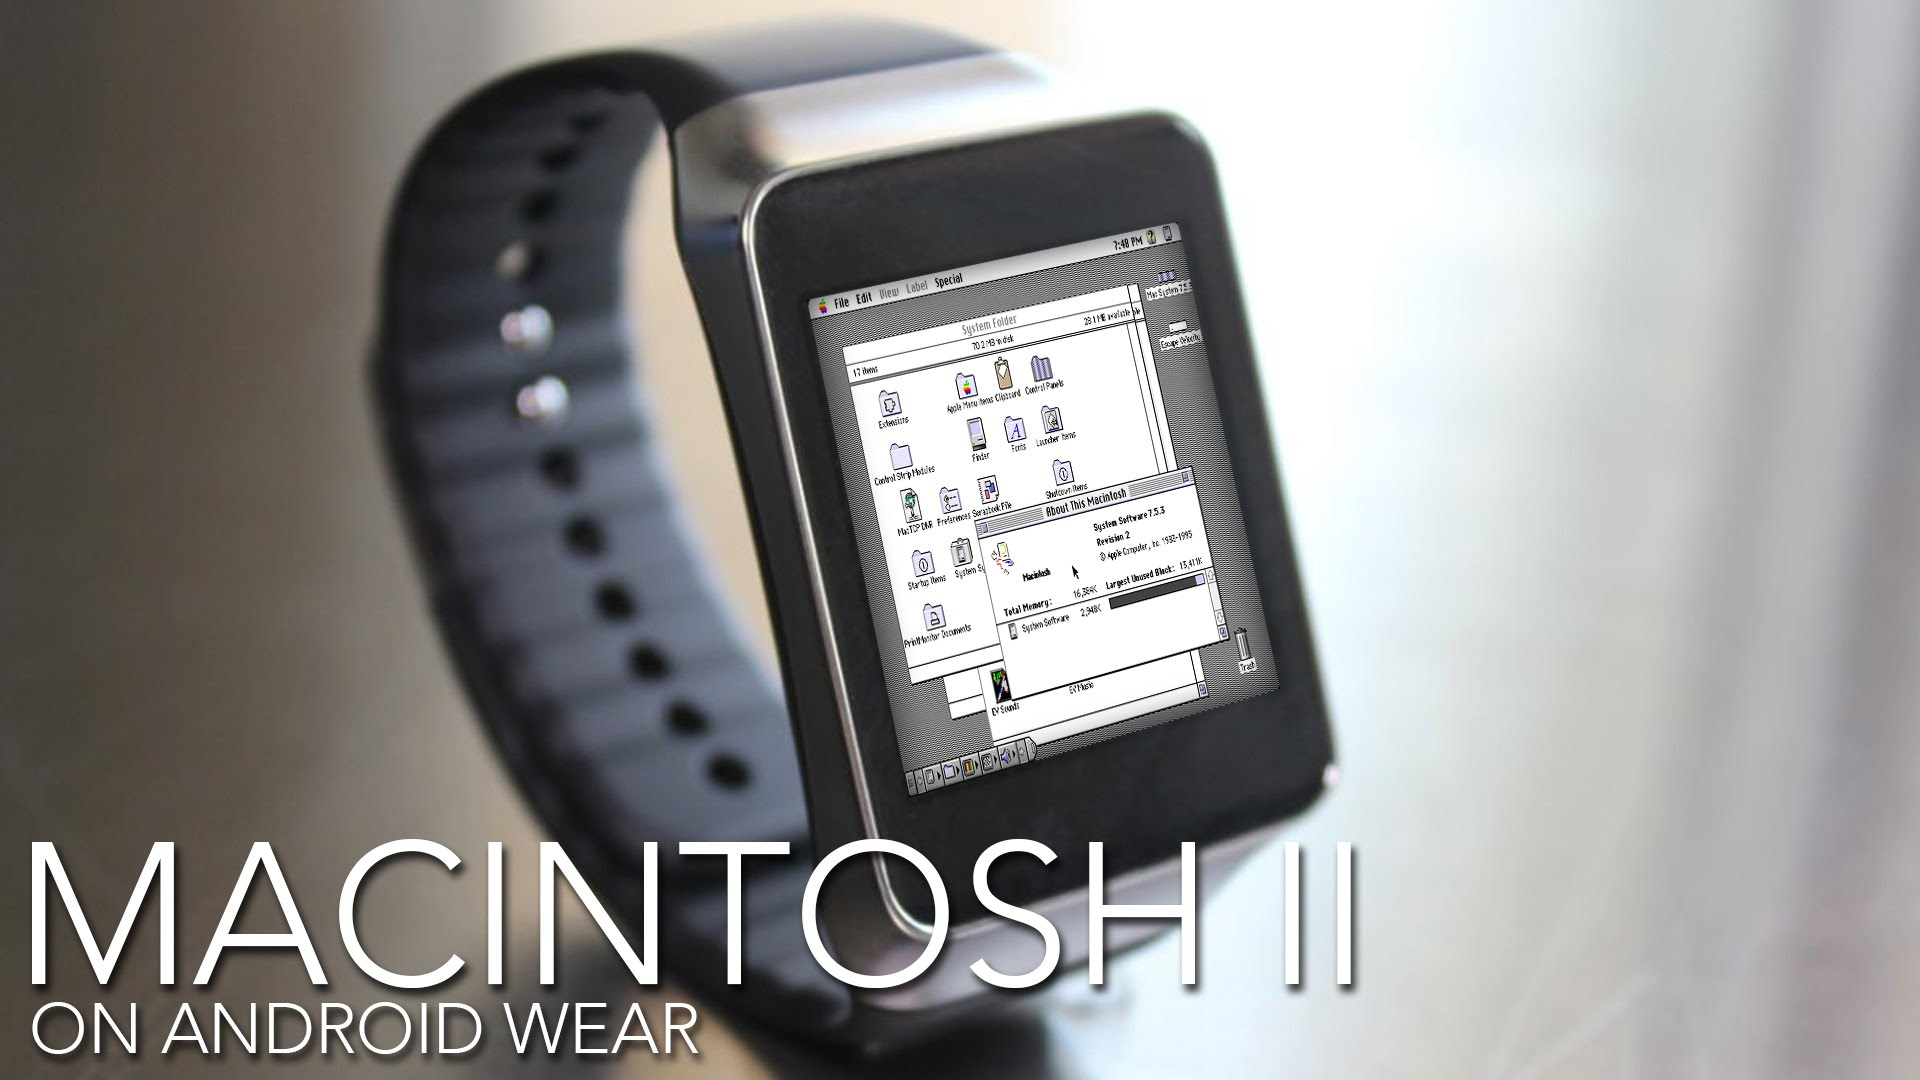 Photo of Macintosh System 6 rodando no Samsung Gear Live com Android Wear